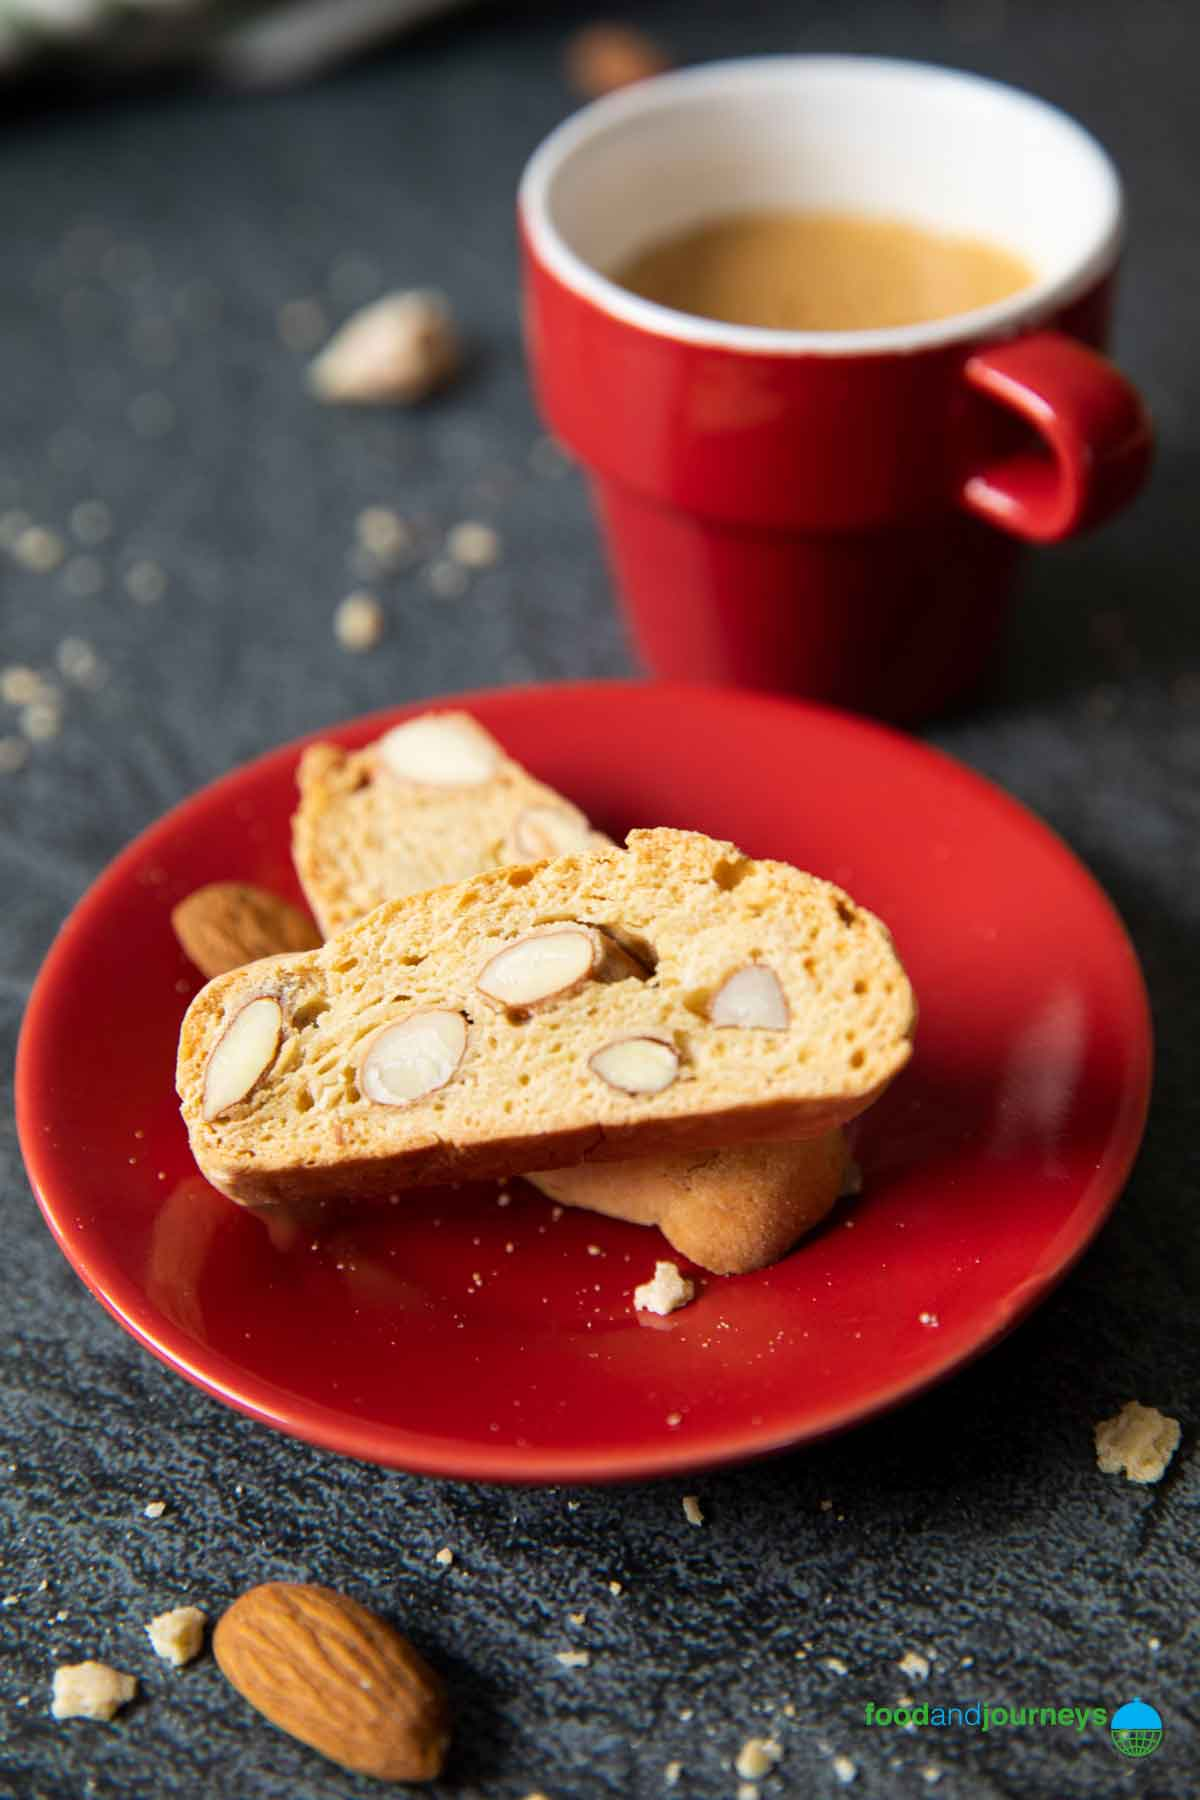 An image showing two Tuscan Almond Biscotti served with an espresso.